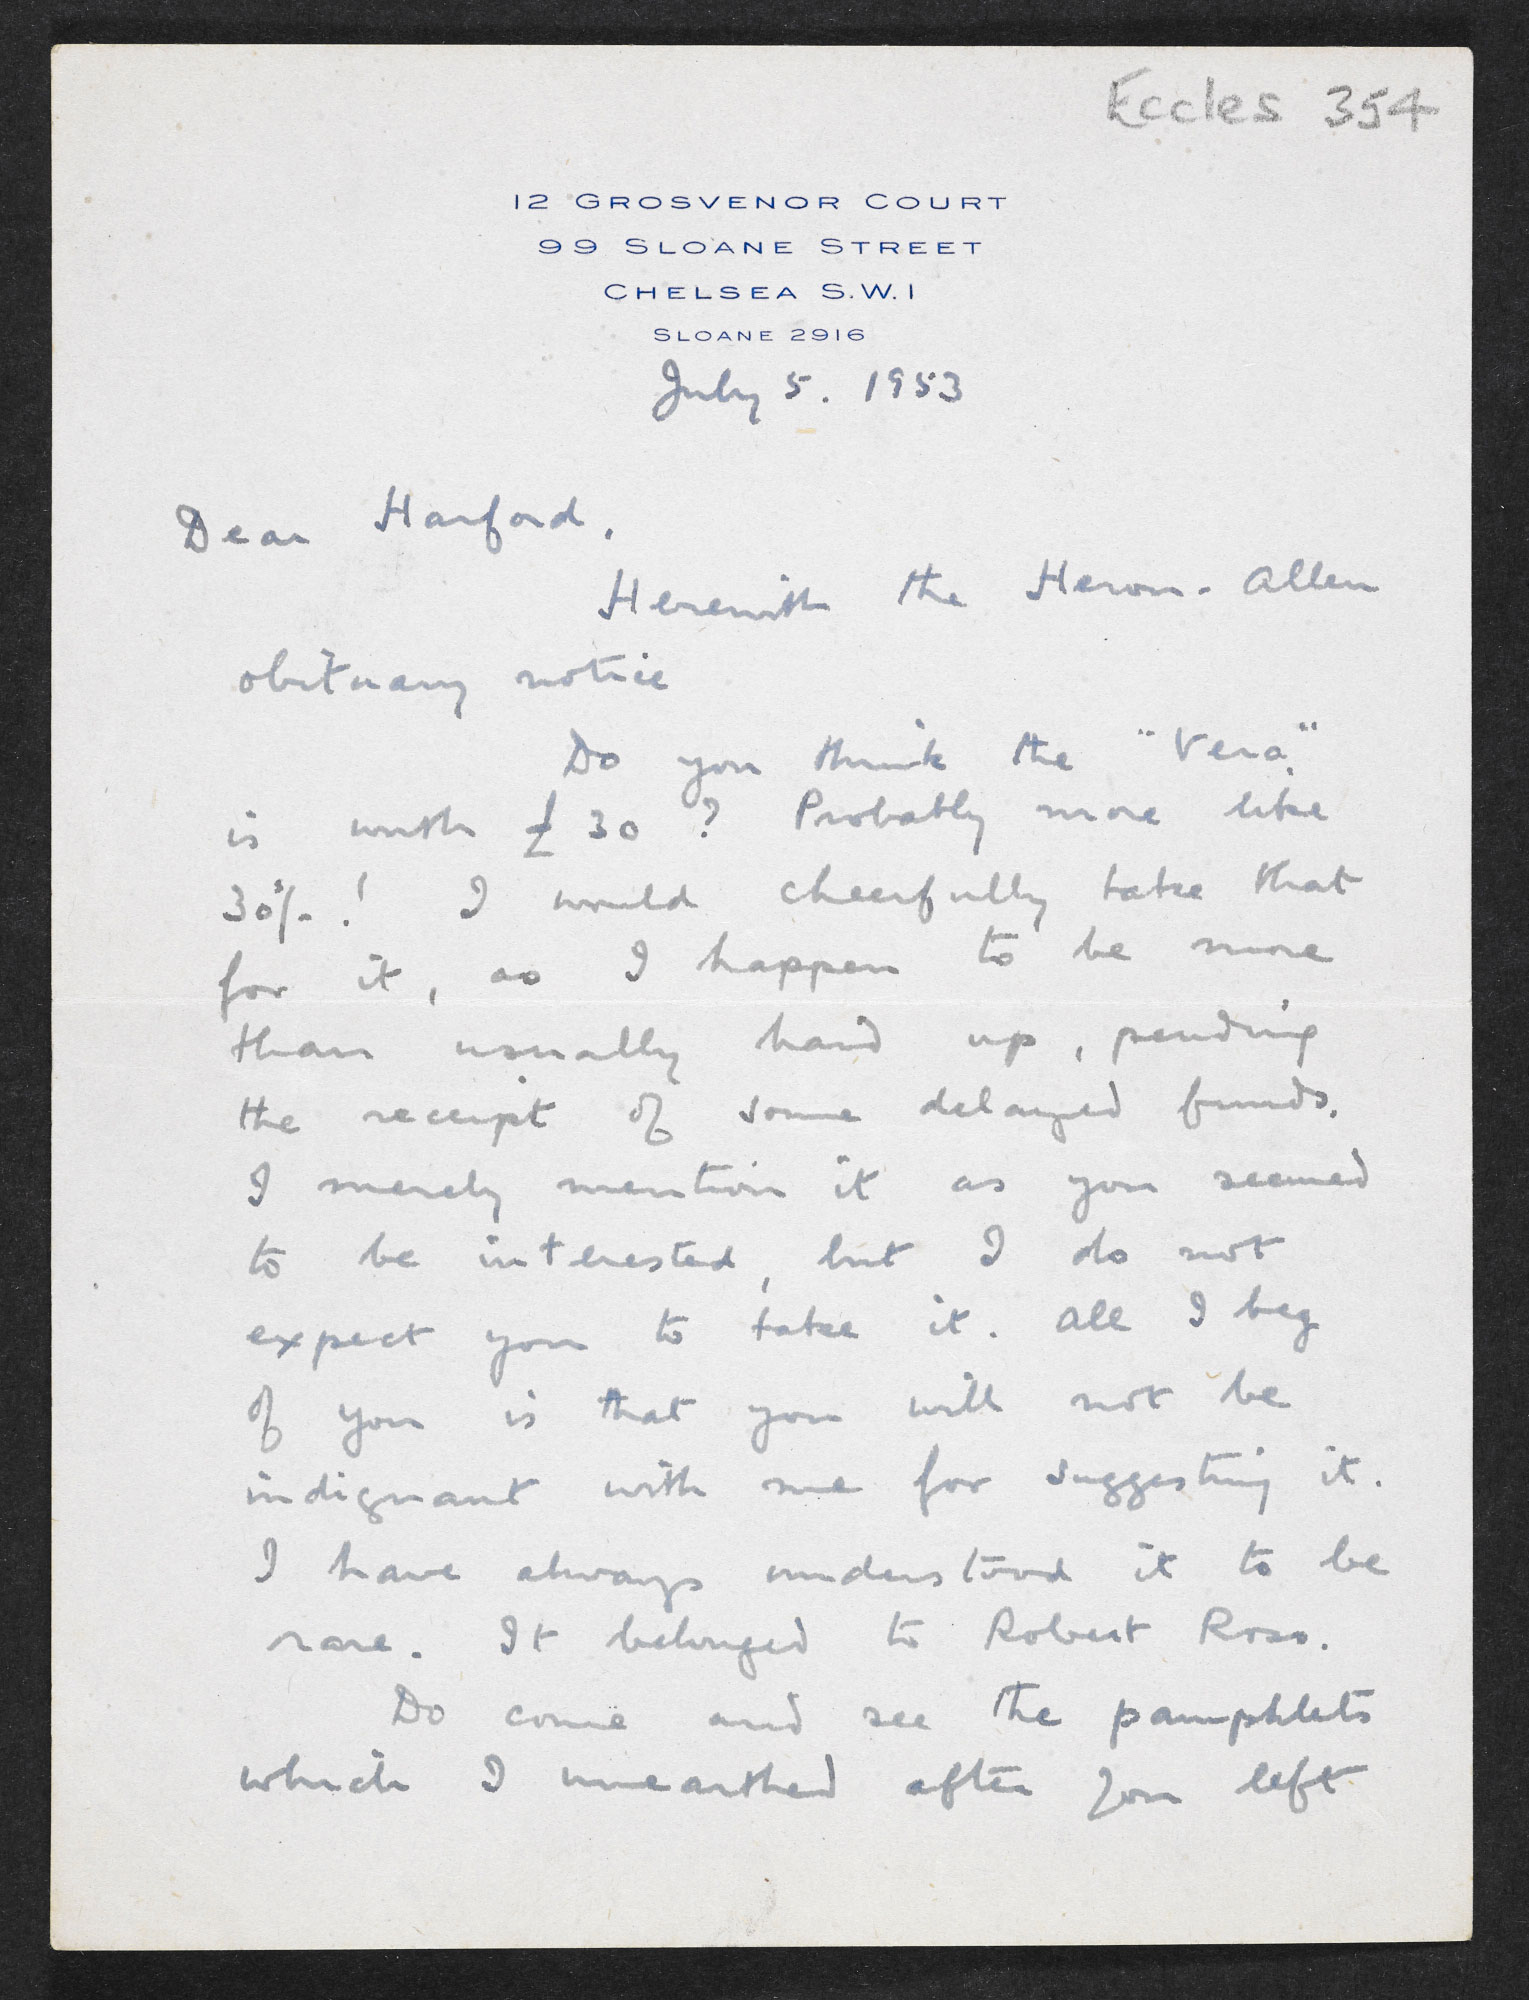 Vera, a play by Oscar Wilde